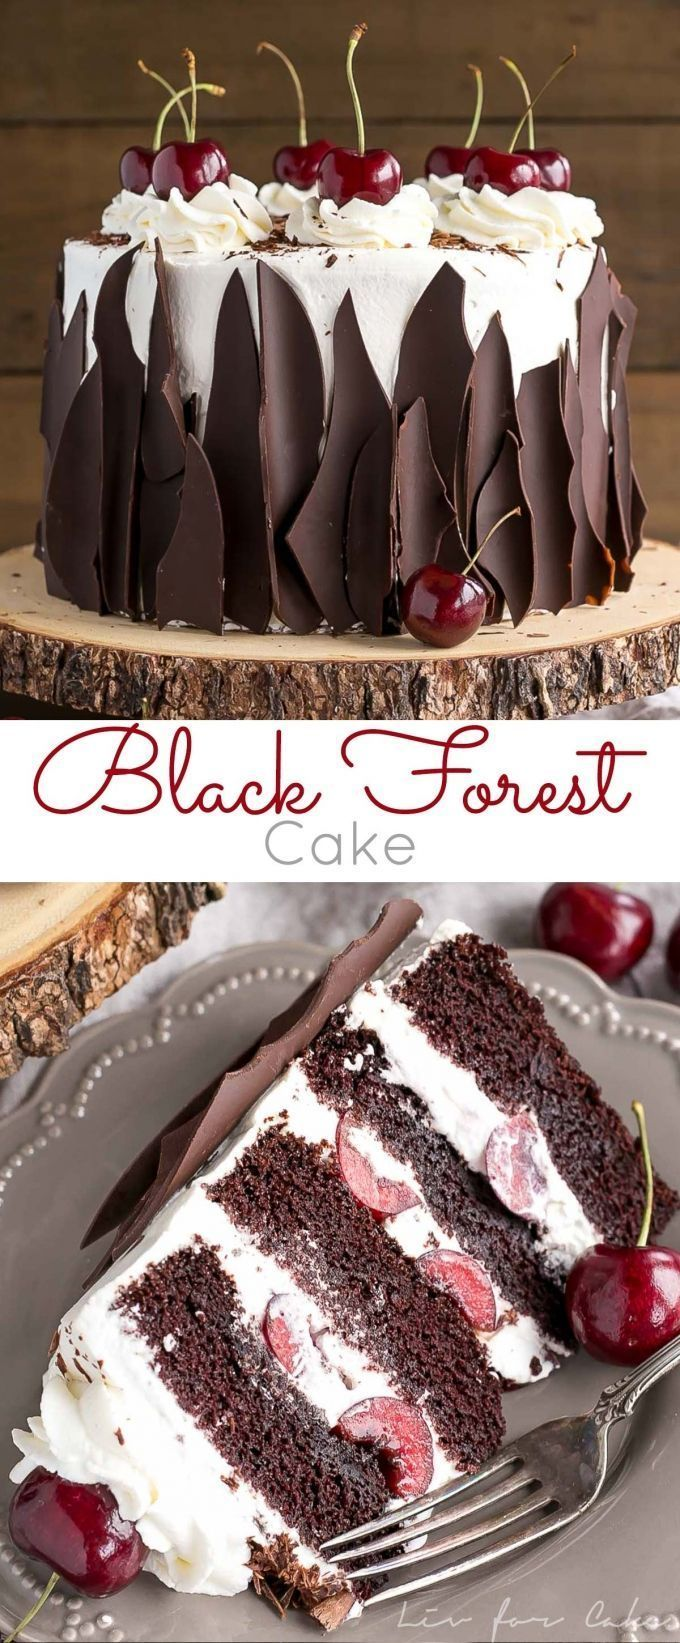 This Black Forest Cake Combines Rich Chocolate Layers With Fresh Cherries Cherry Liqueur And A Simple Whipped Cream Frosting